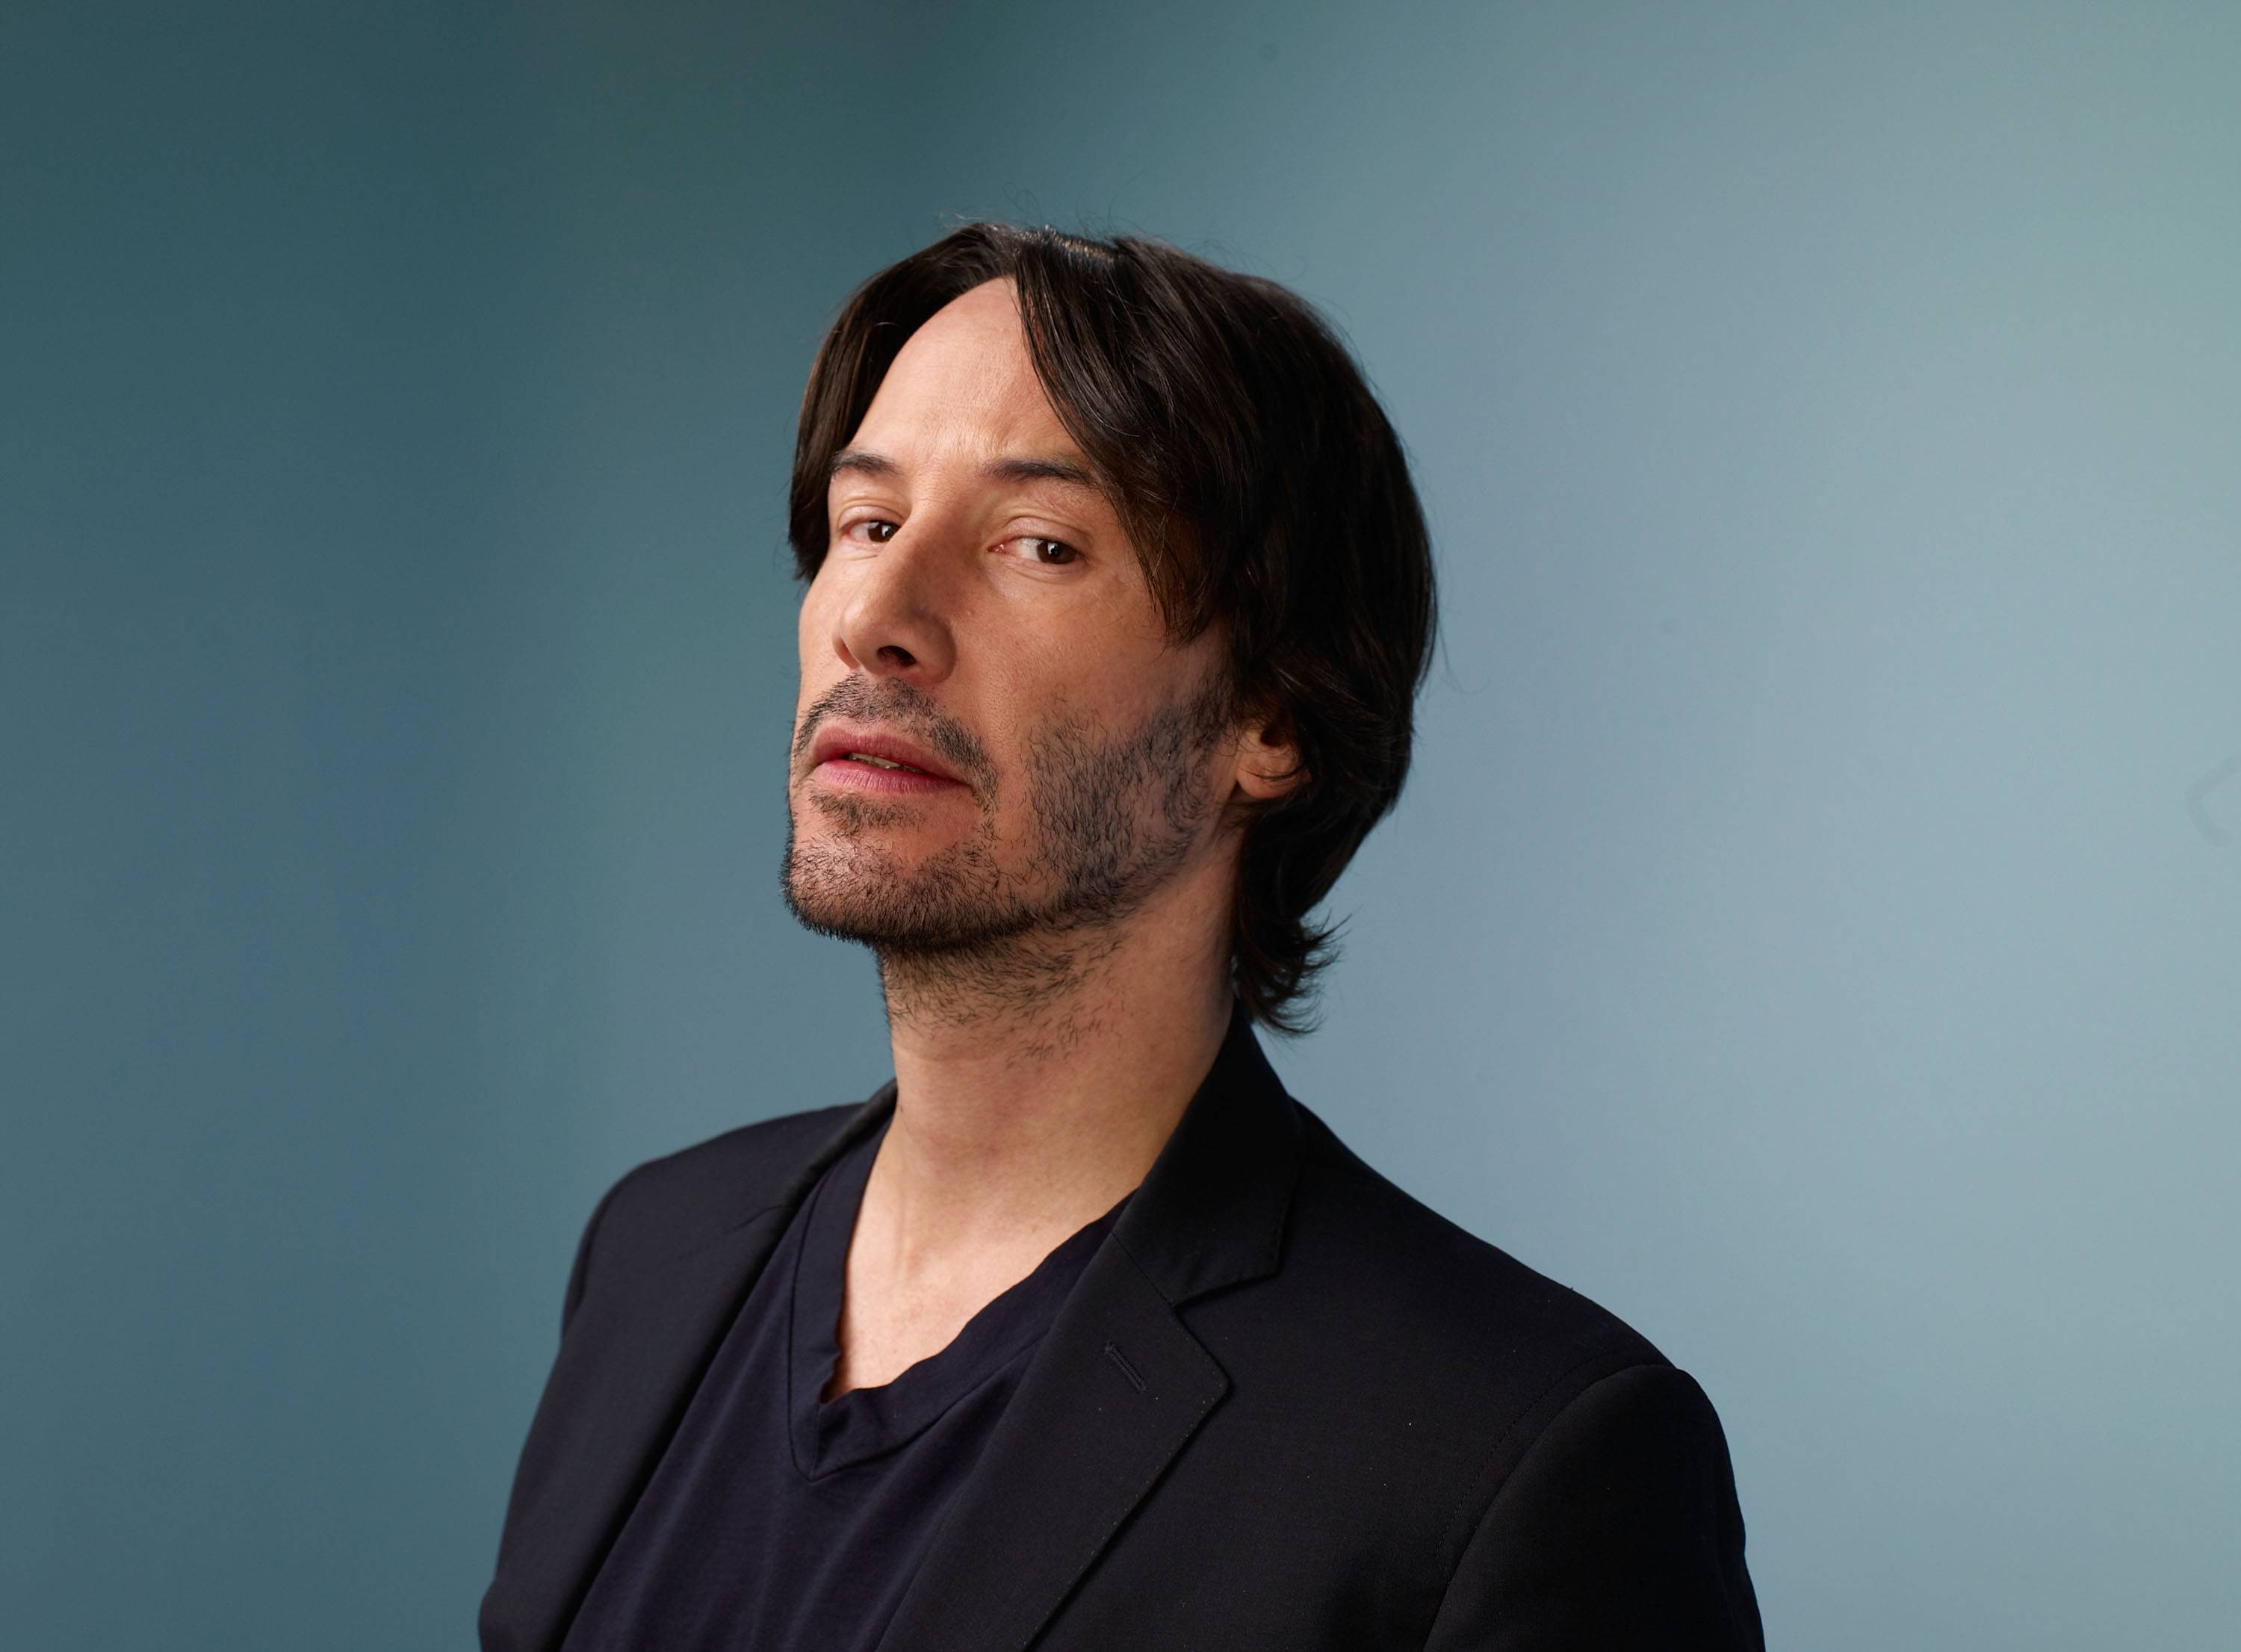 KeanuReevesnet Your one stop place for all things Keanu Reeves! Updated info on Keanus career a peek into the man himself as well as other interactive features